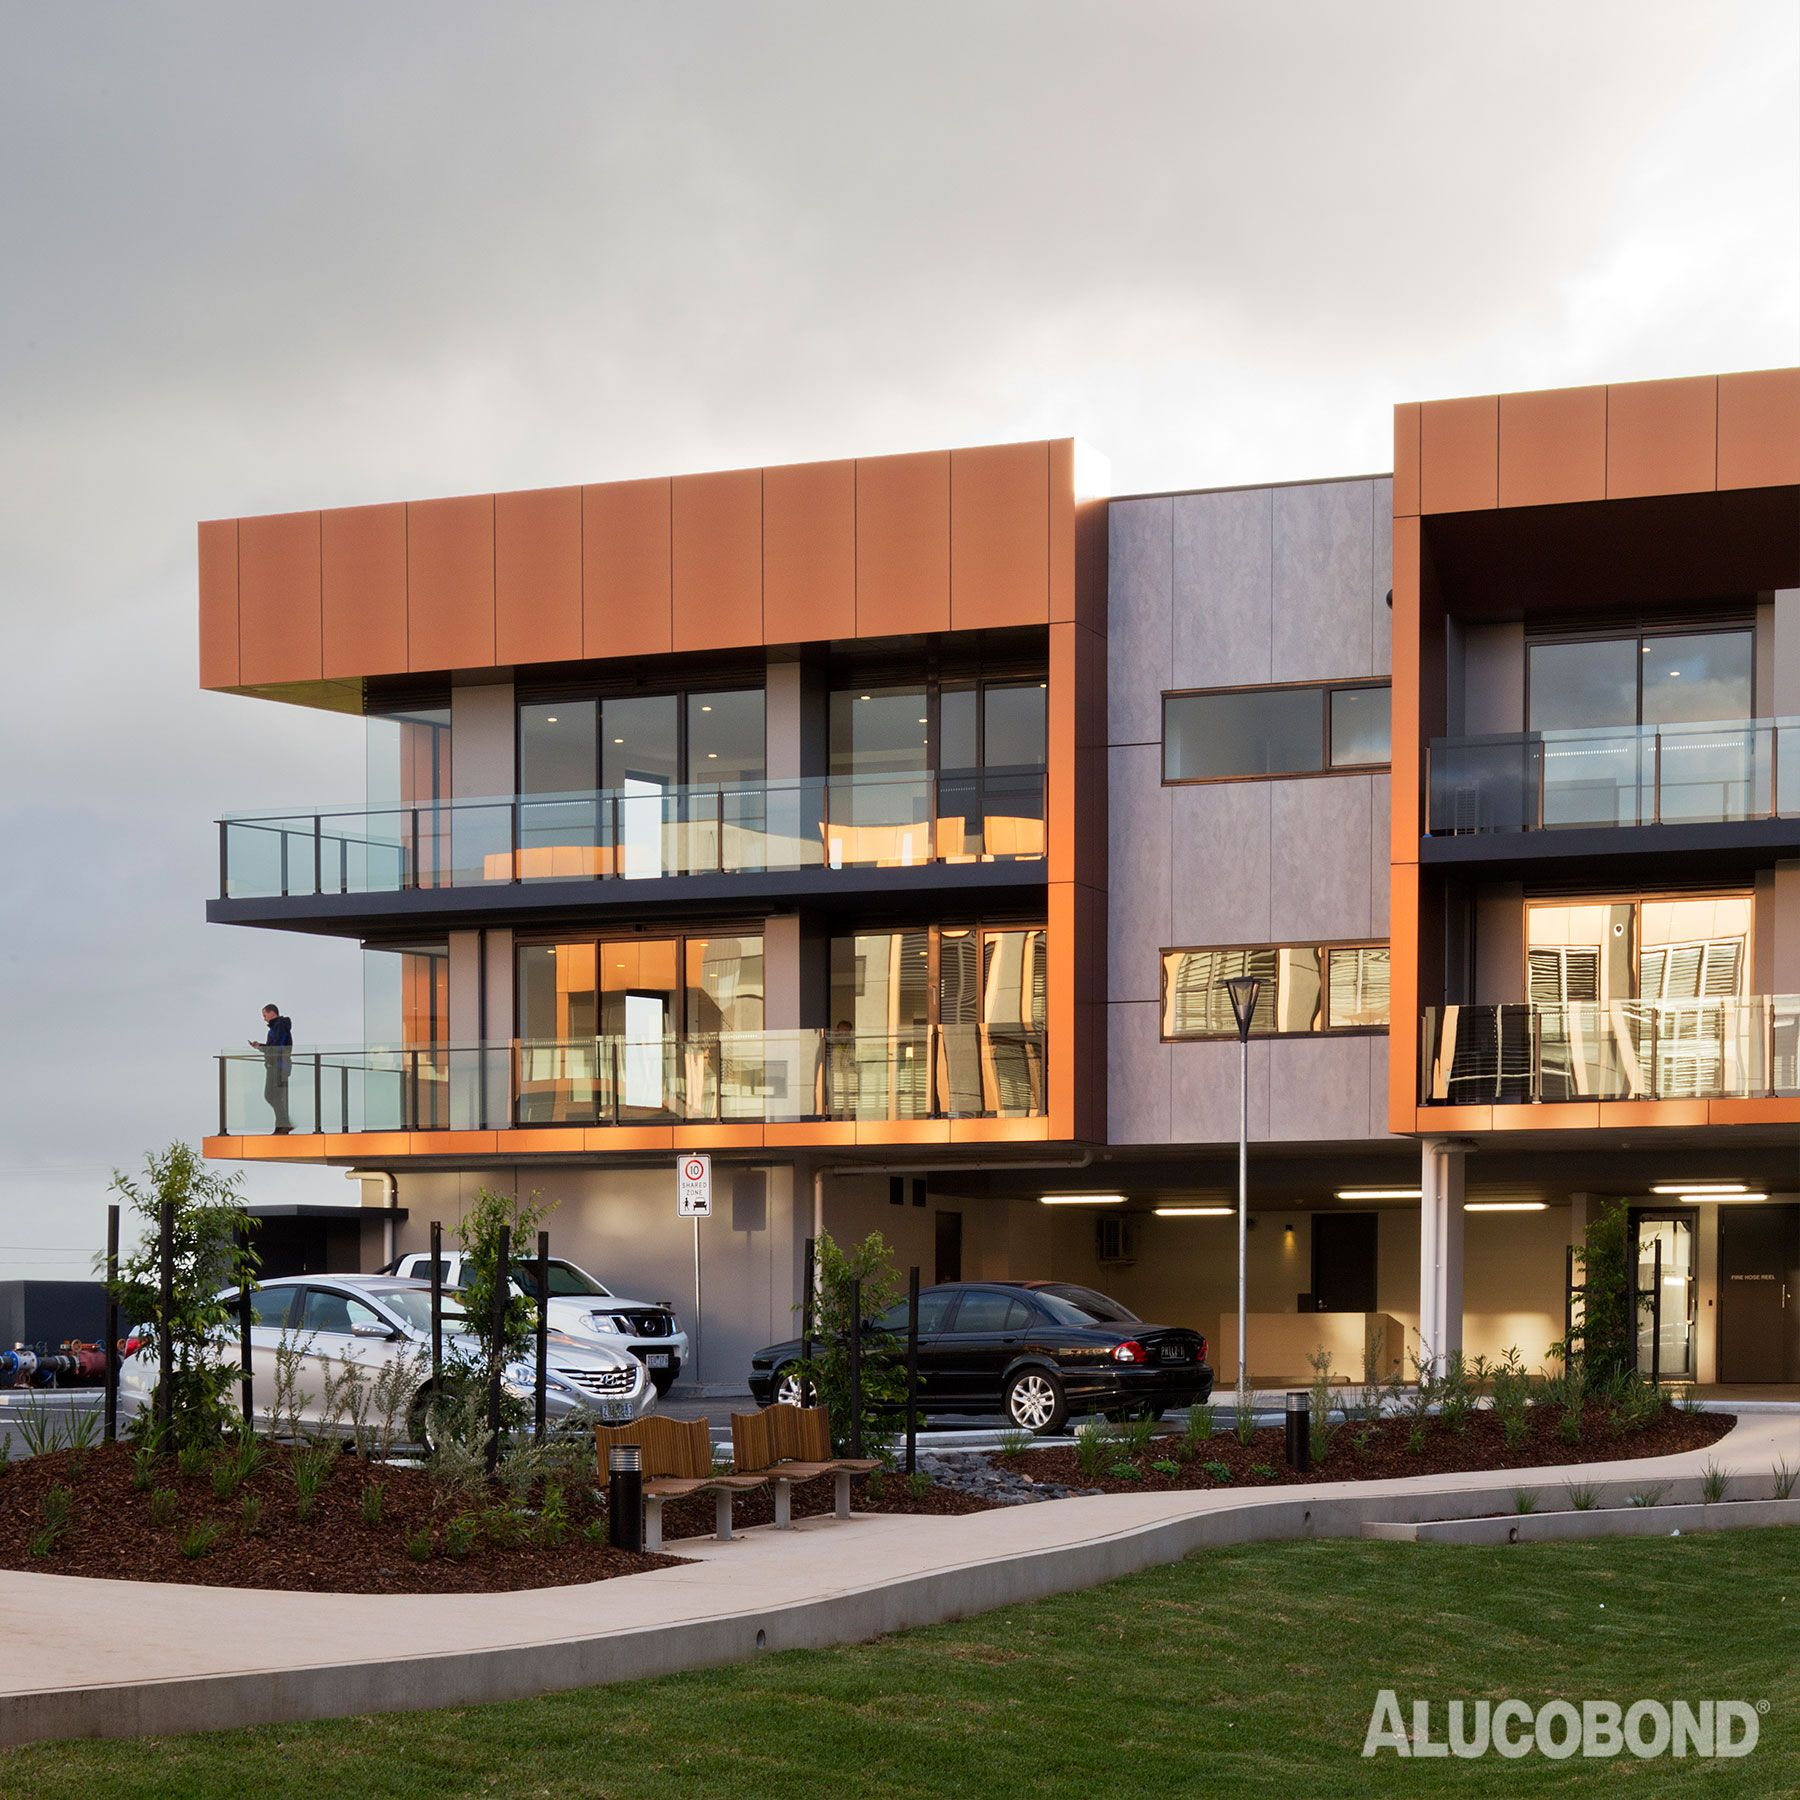 Oak Pointe Apartments: An Inspiring Apartment Development Situated Within The